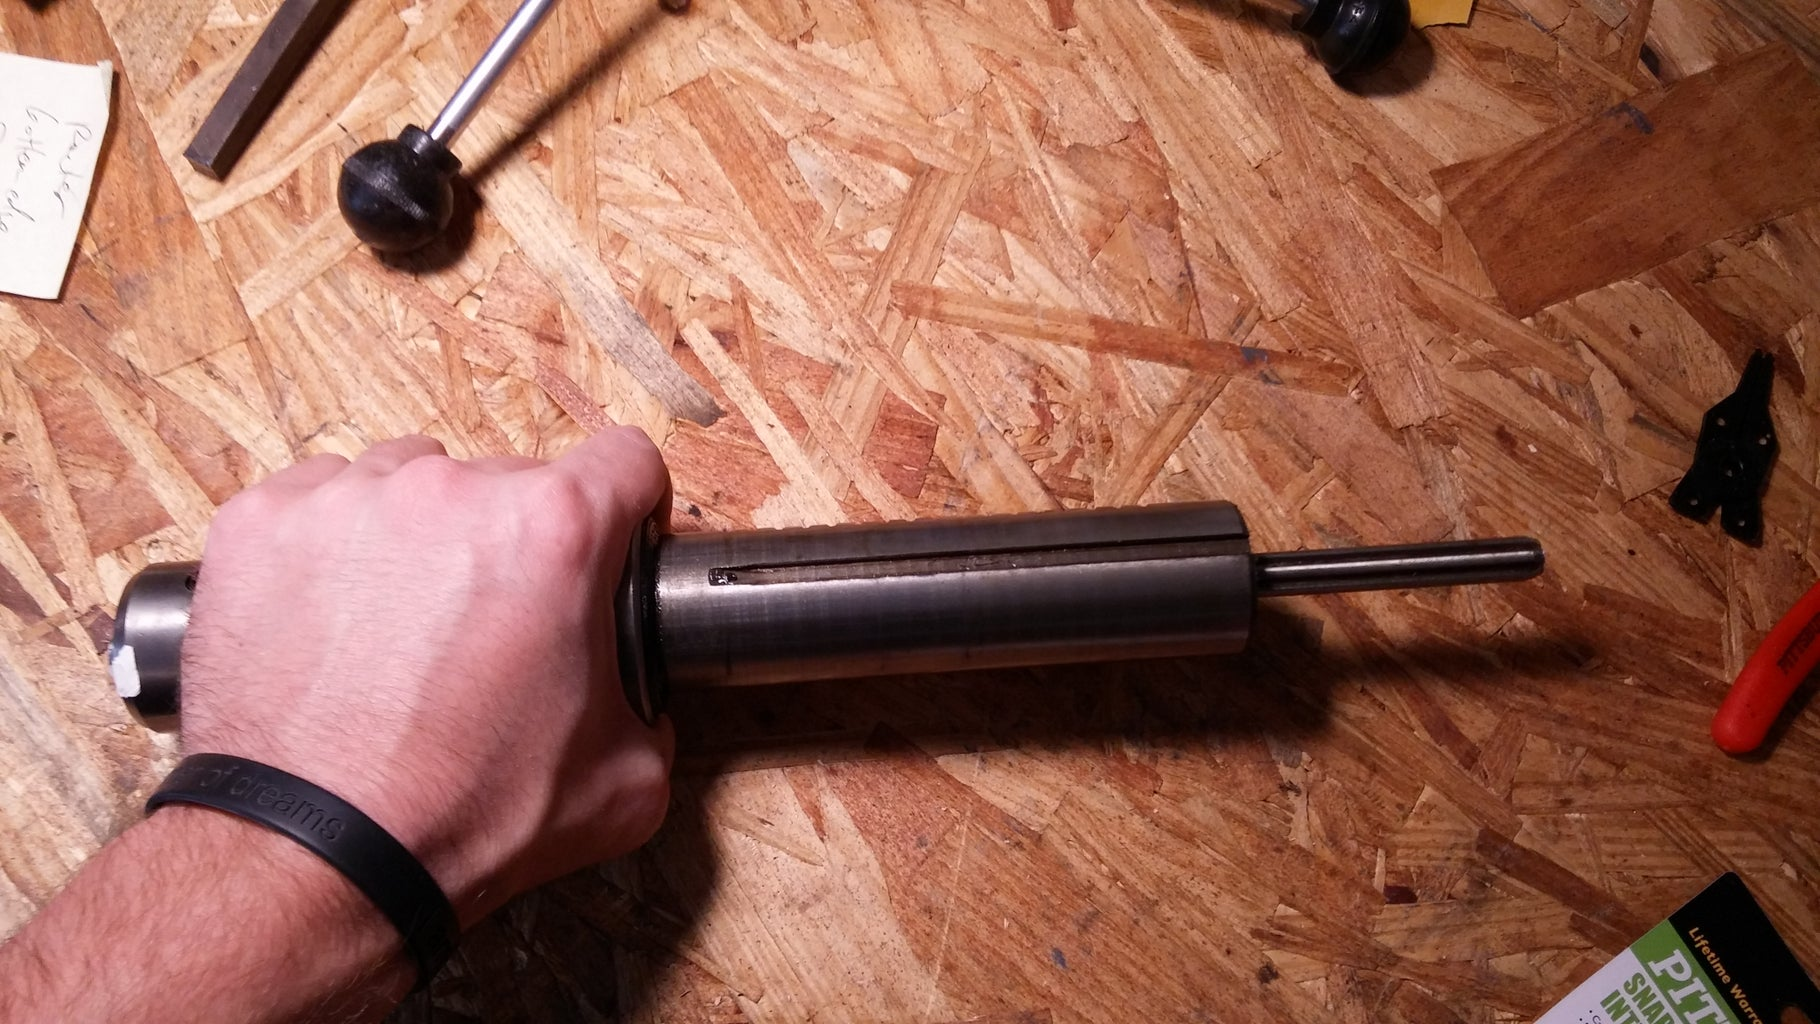 Remove Feed Lever